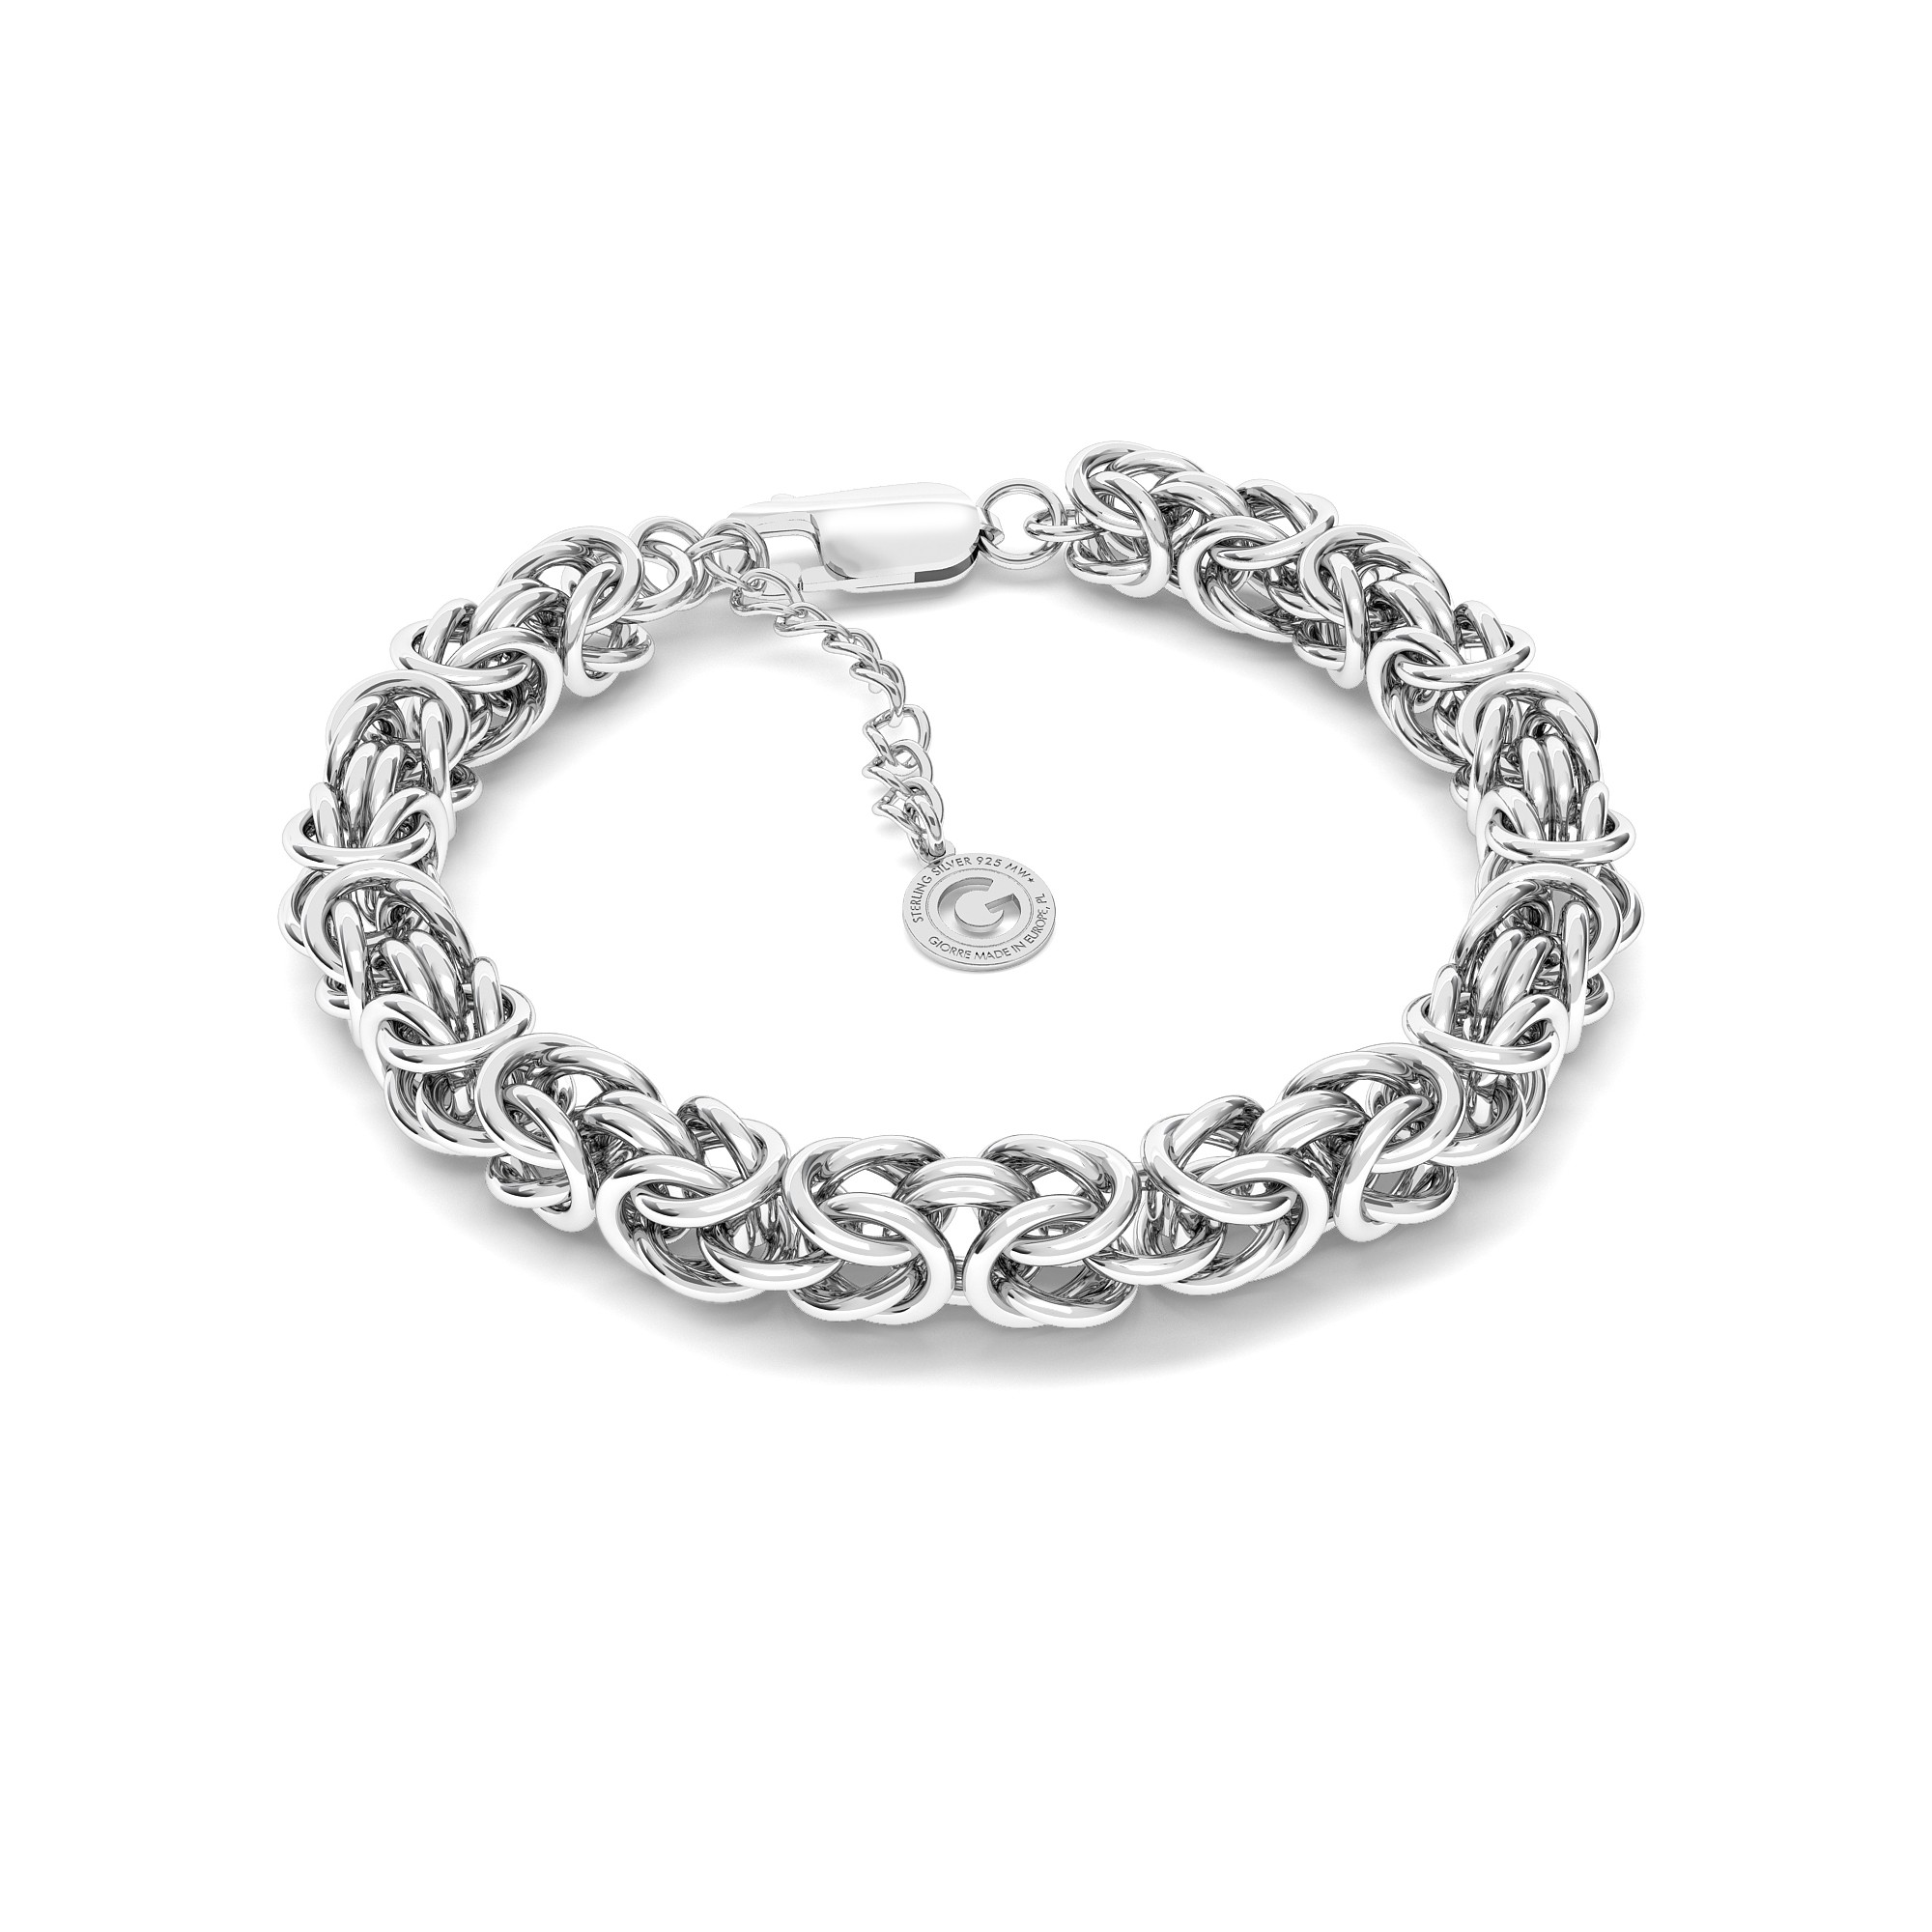 Silver bracelet royal nahd made chain sterling silver 925